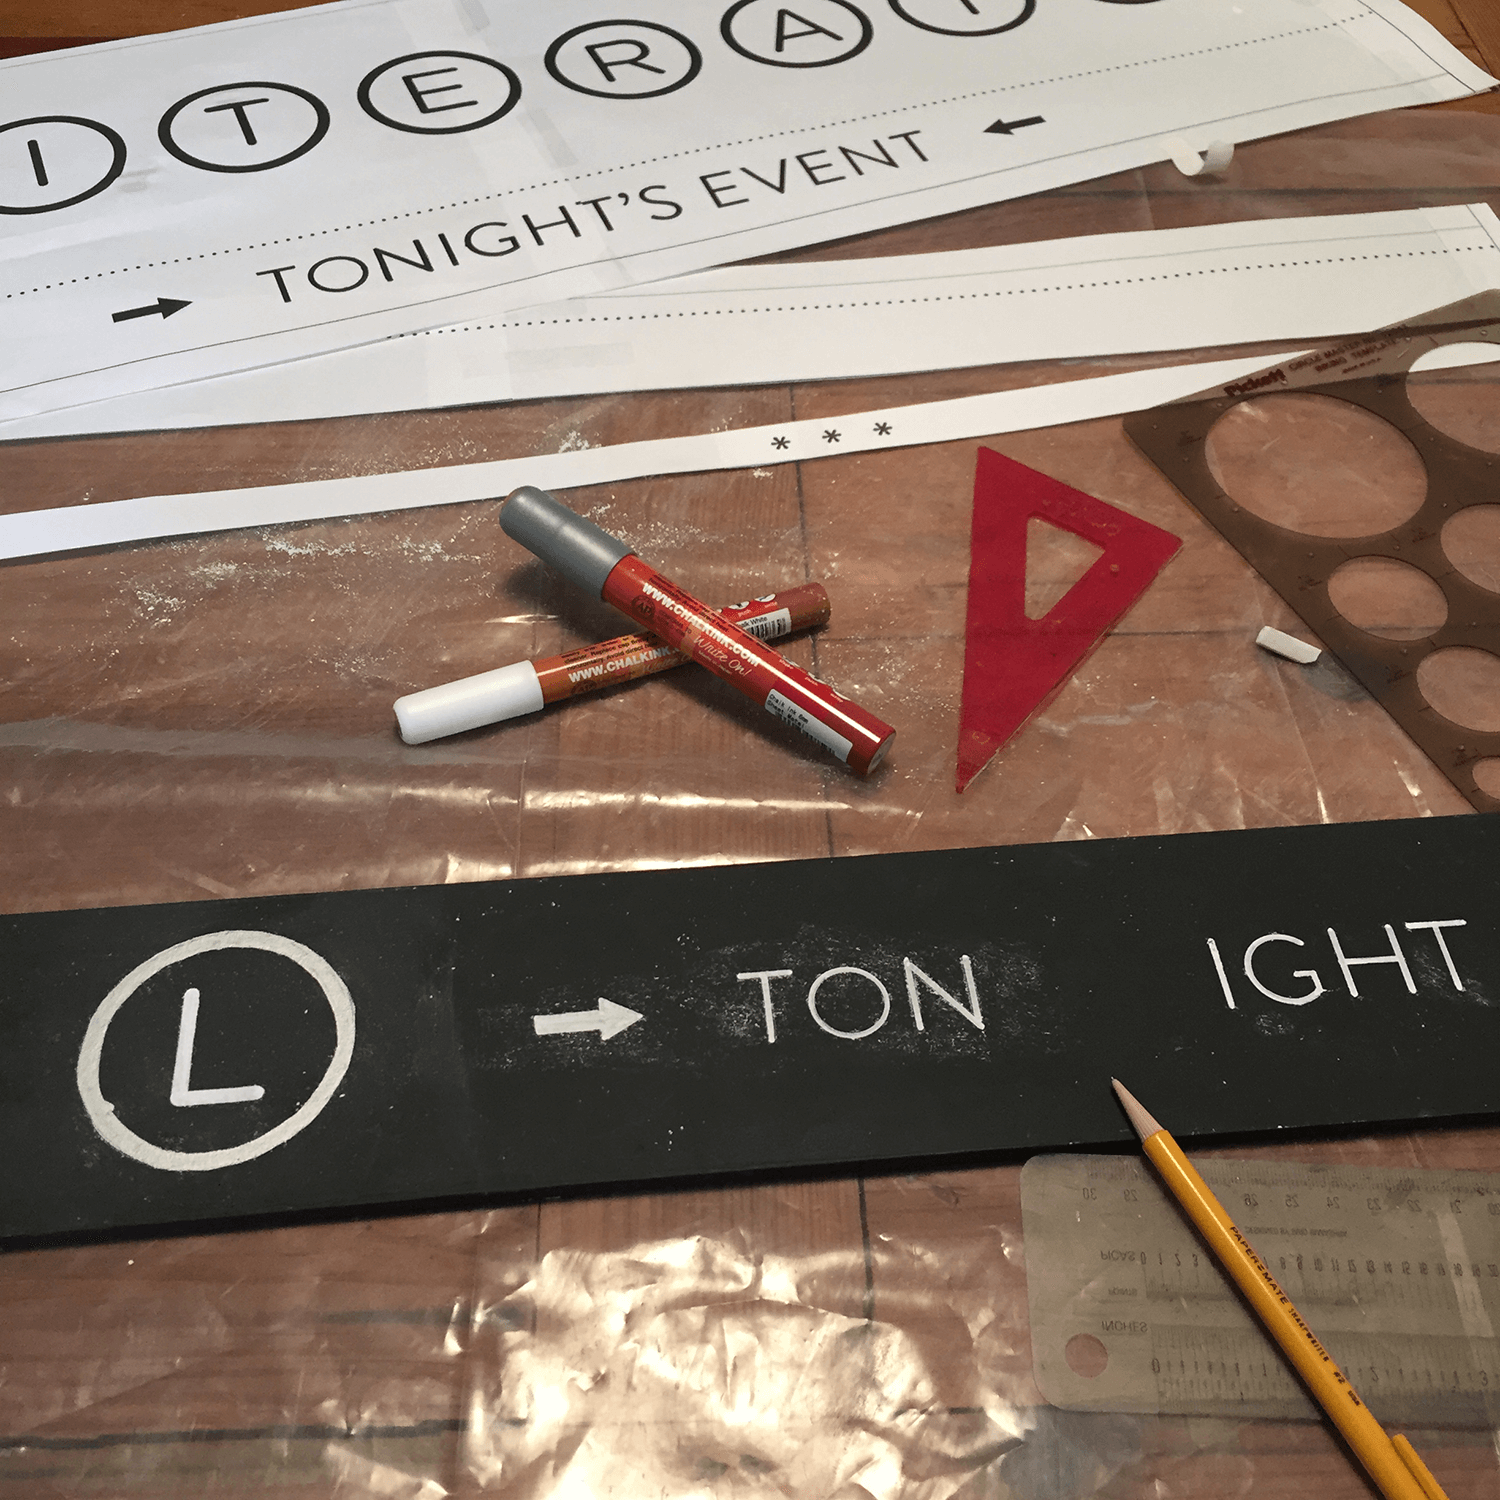 A series of templates and tools helped me nail the lettering on the first try.